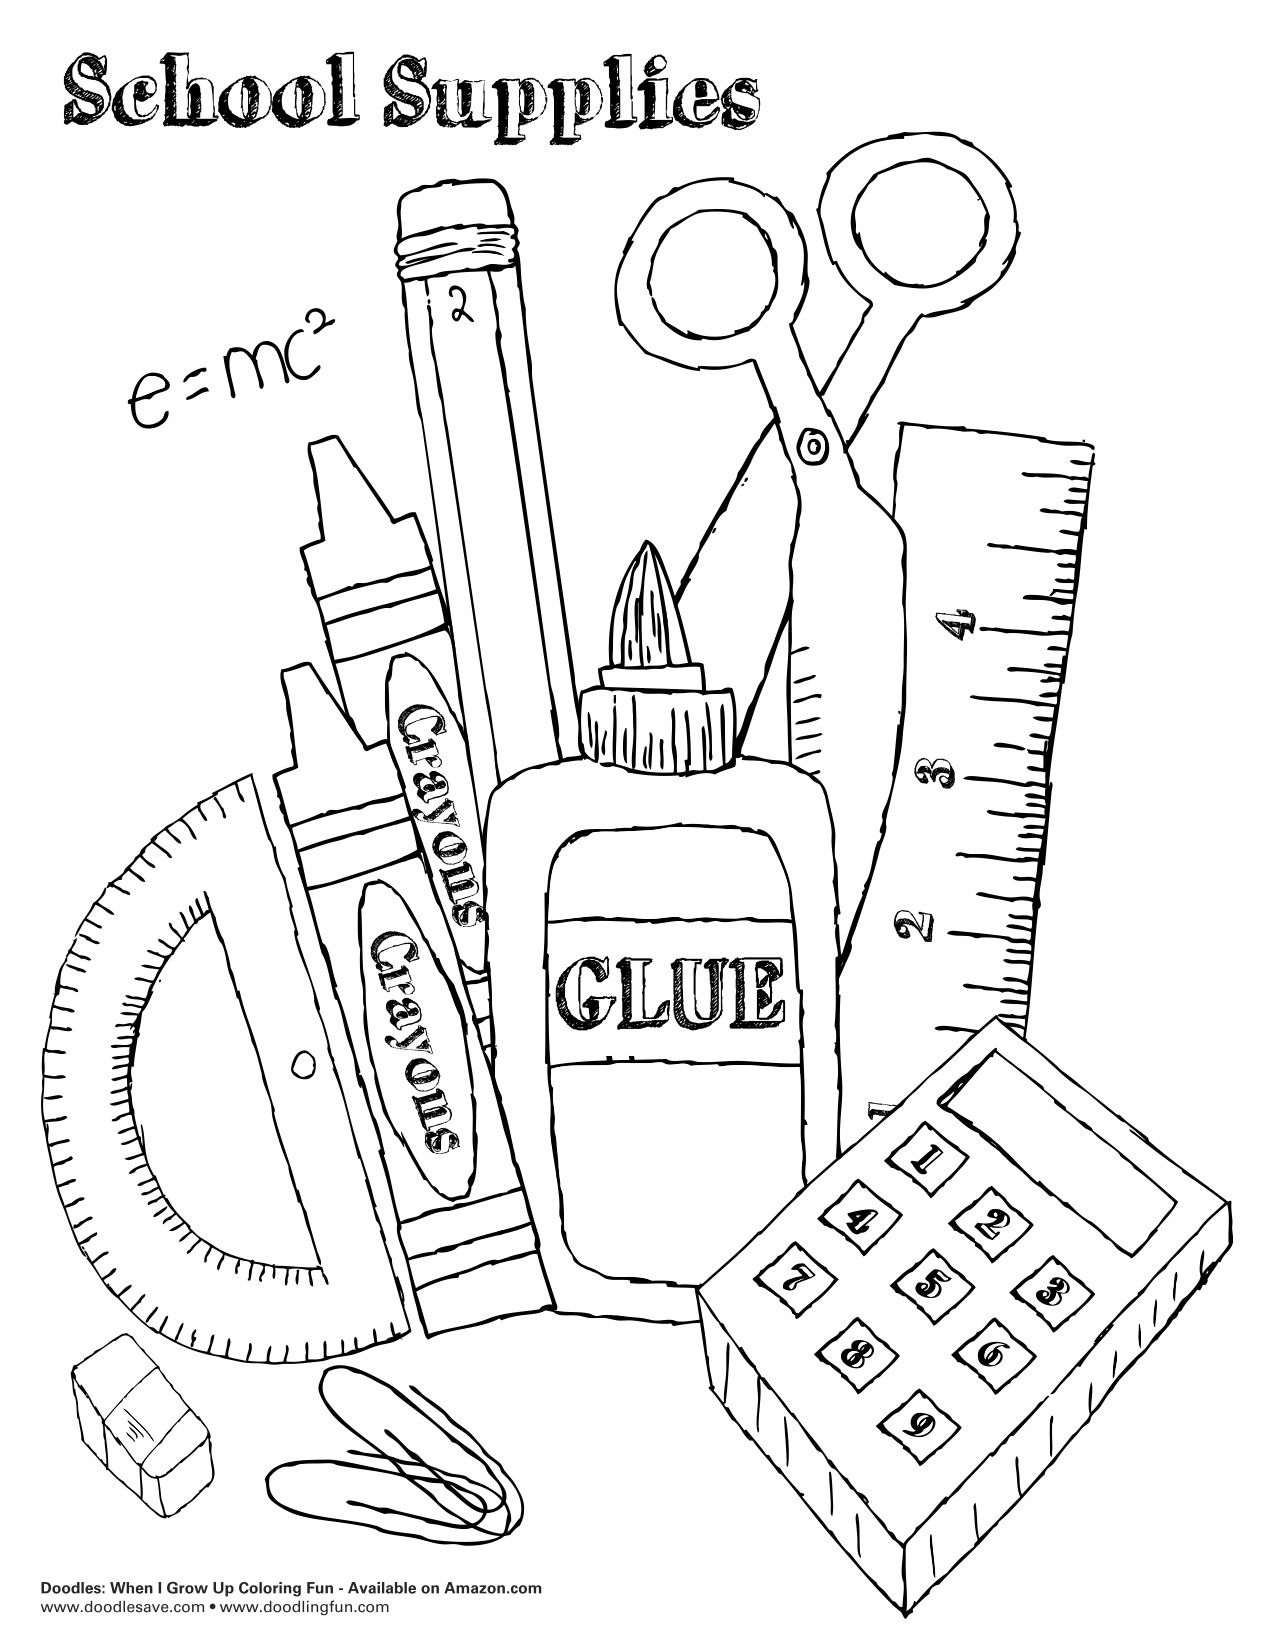 free art supply coloring pages | School Supplies Drawing at GetDrawings.com | Free for ...